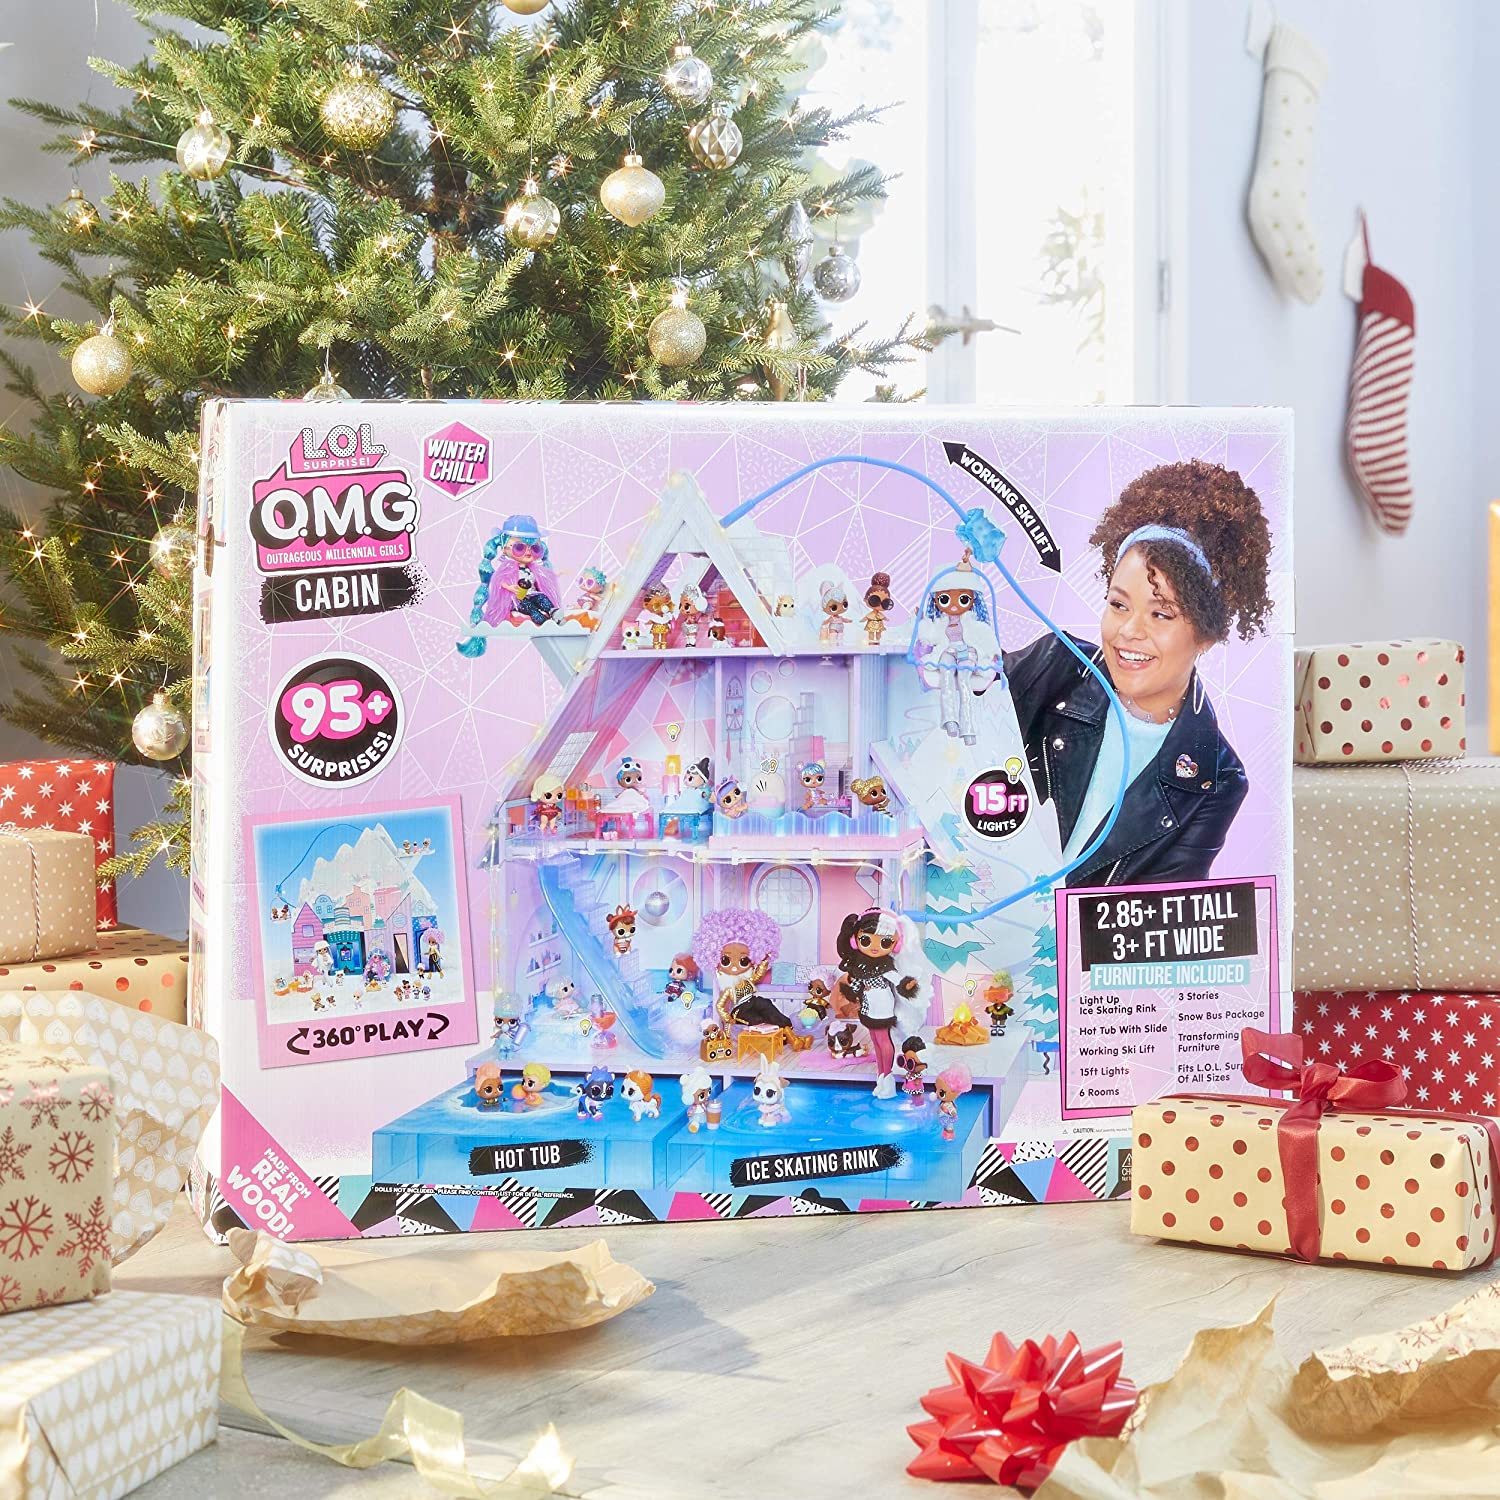 Surprise O.M.G Hot Tub and Real Ice Skating Rink HiCollections L.O.L Winter Chill Cabin Wooden Doll House with 95+ Surprises